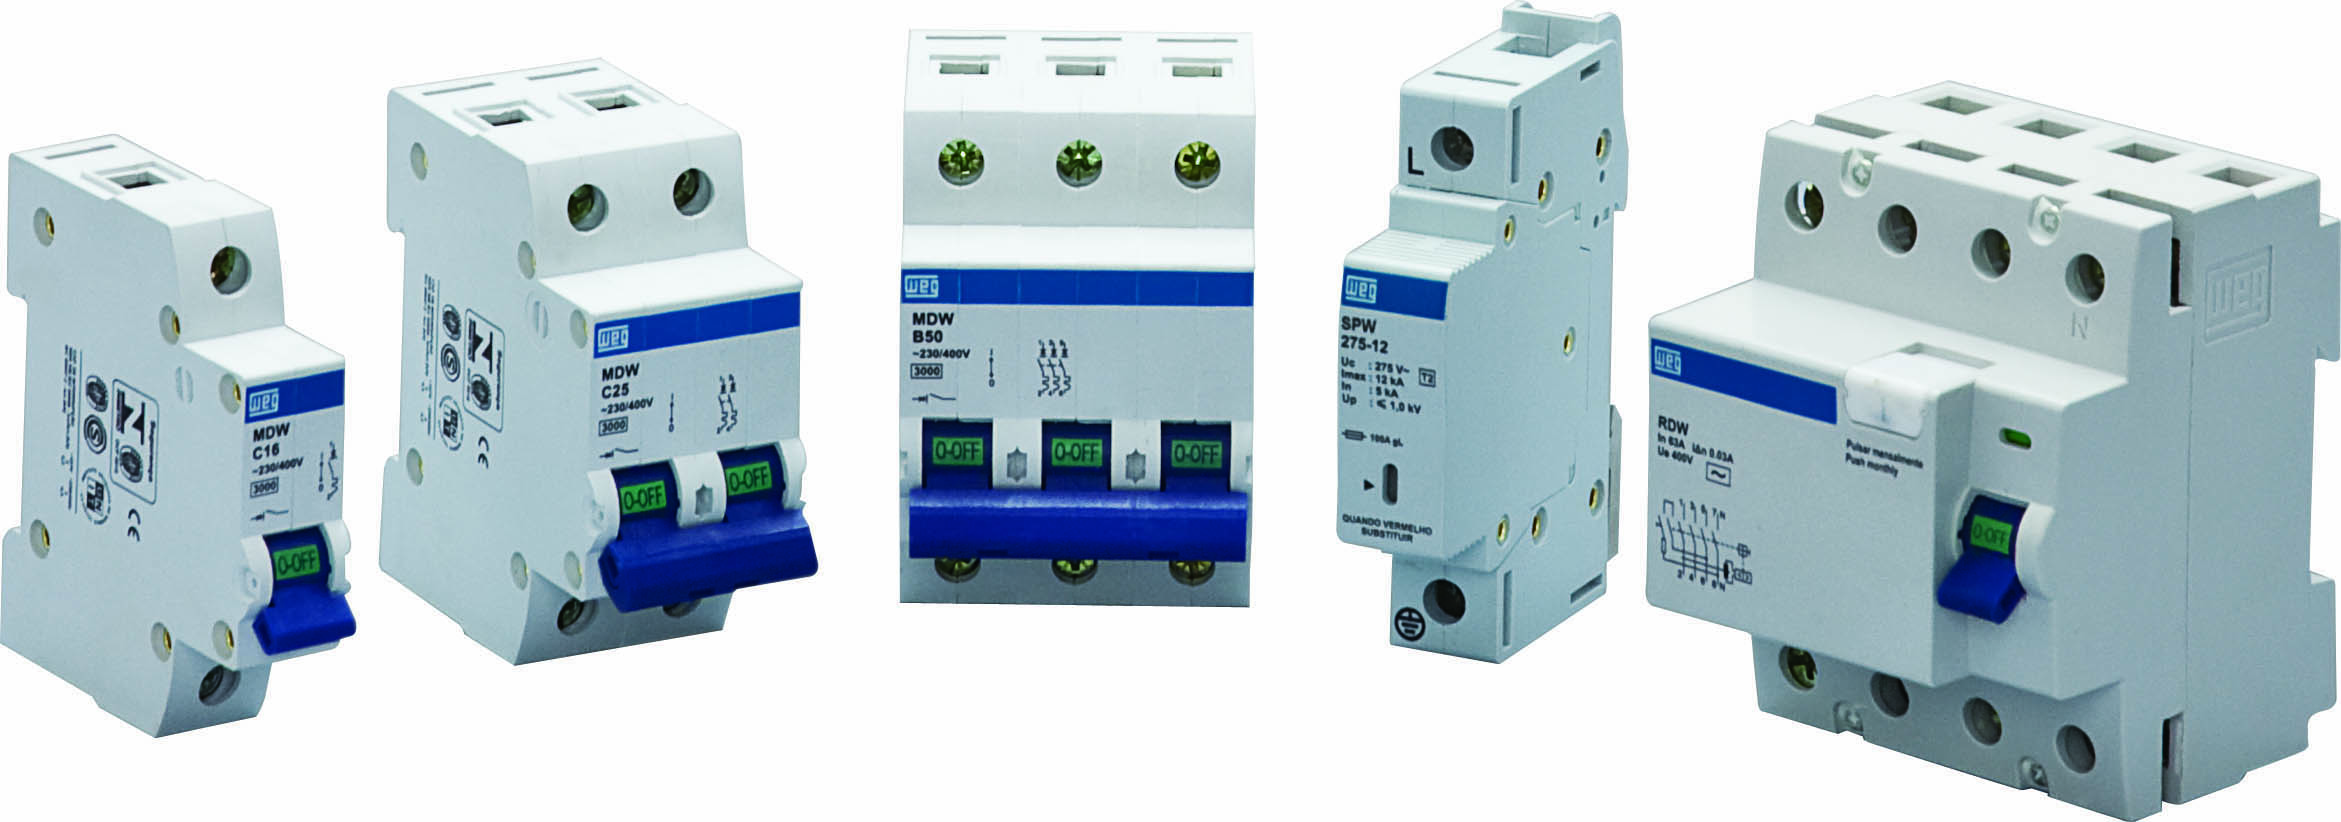 Approved Miniature Circuit Breakers Credible Carbon House Mcb Breaker China High Quality The Weg Mdw And Mdwh Lines Comply With Tripping Characteristic Curves B C According To Iec 60898 60947 2